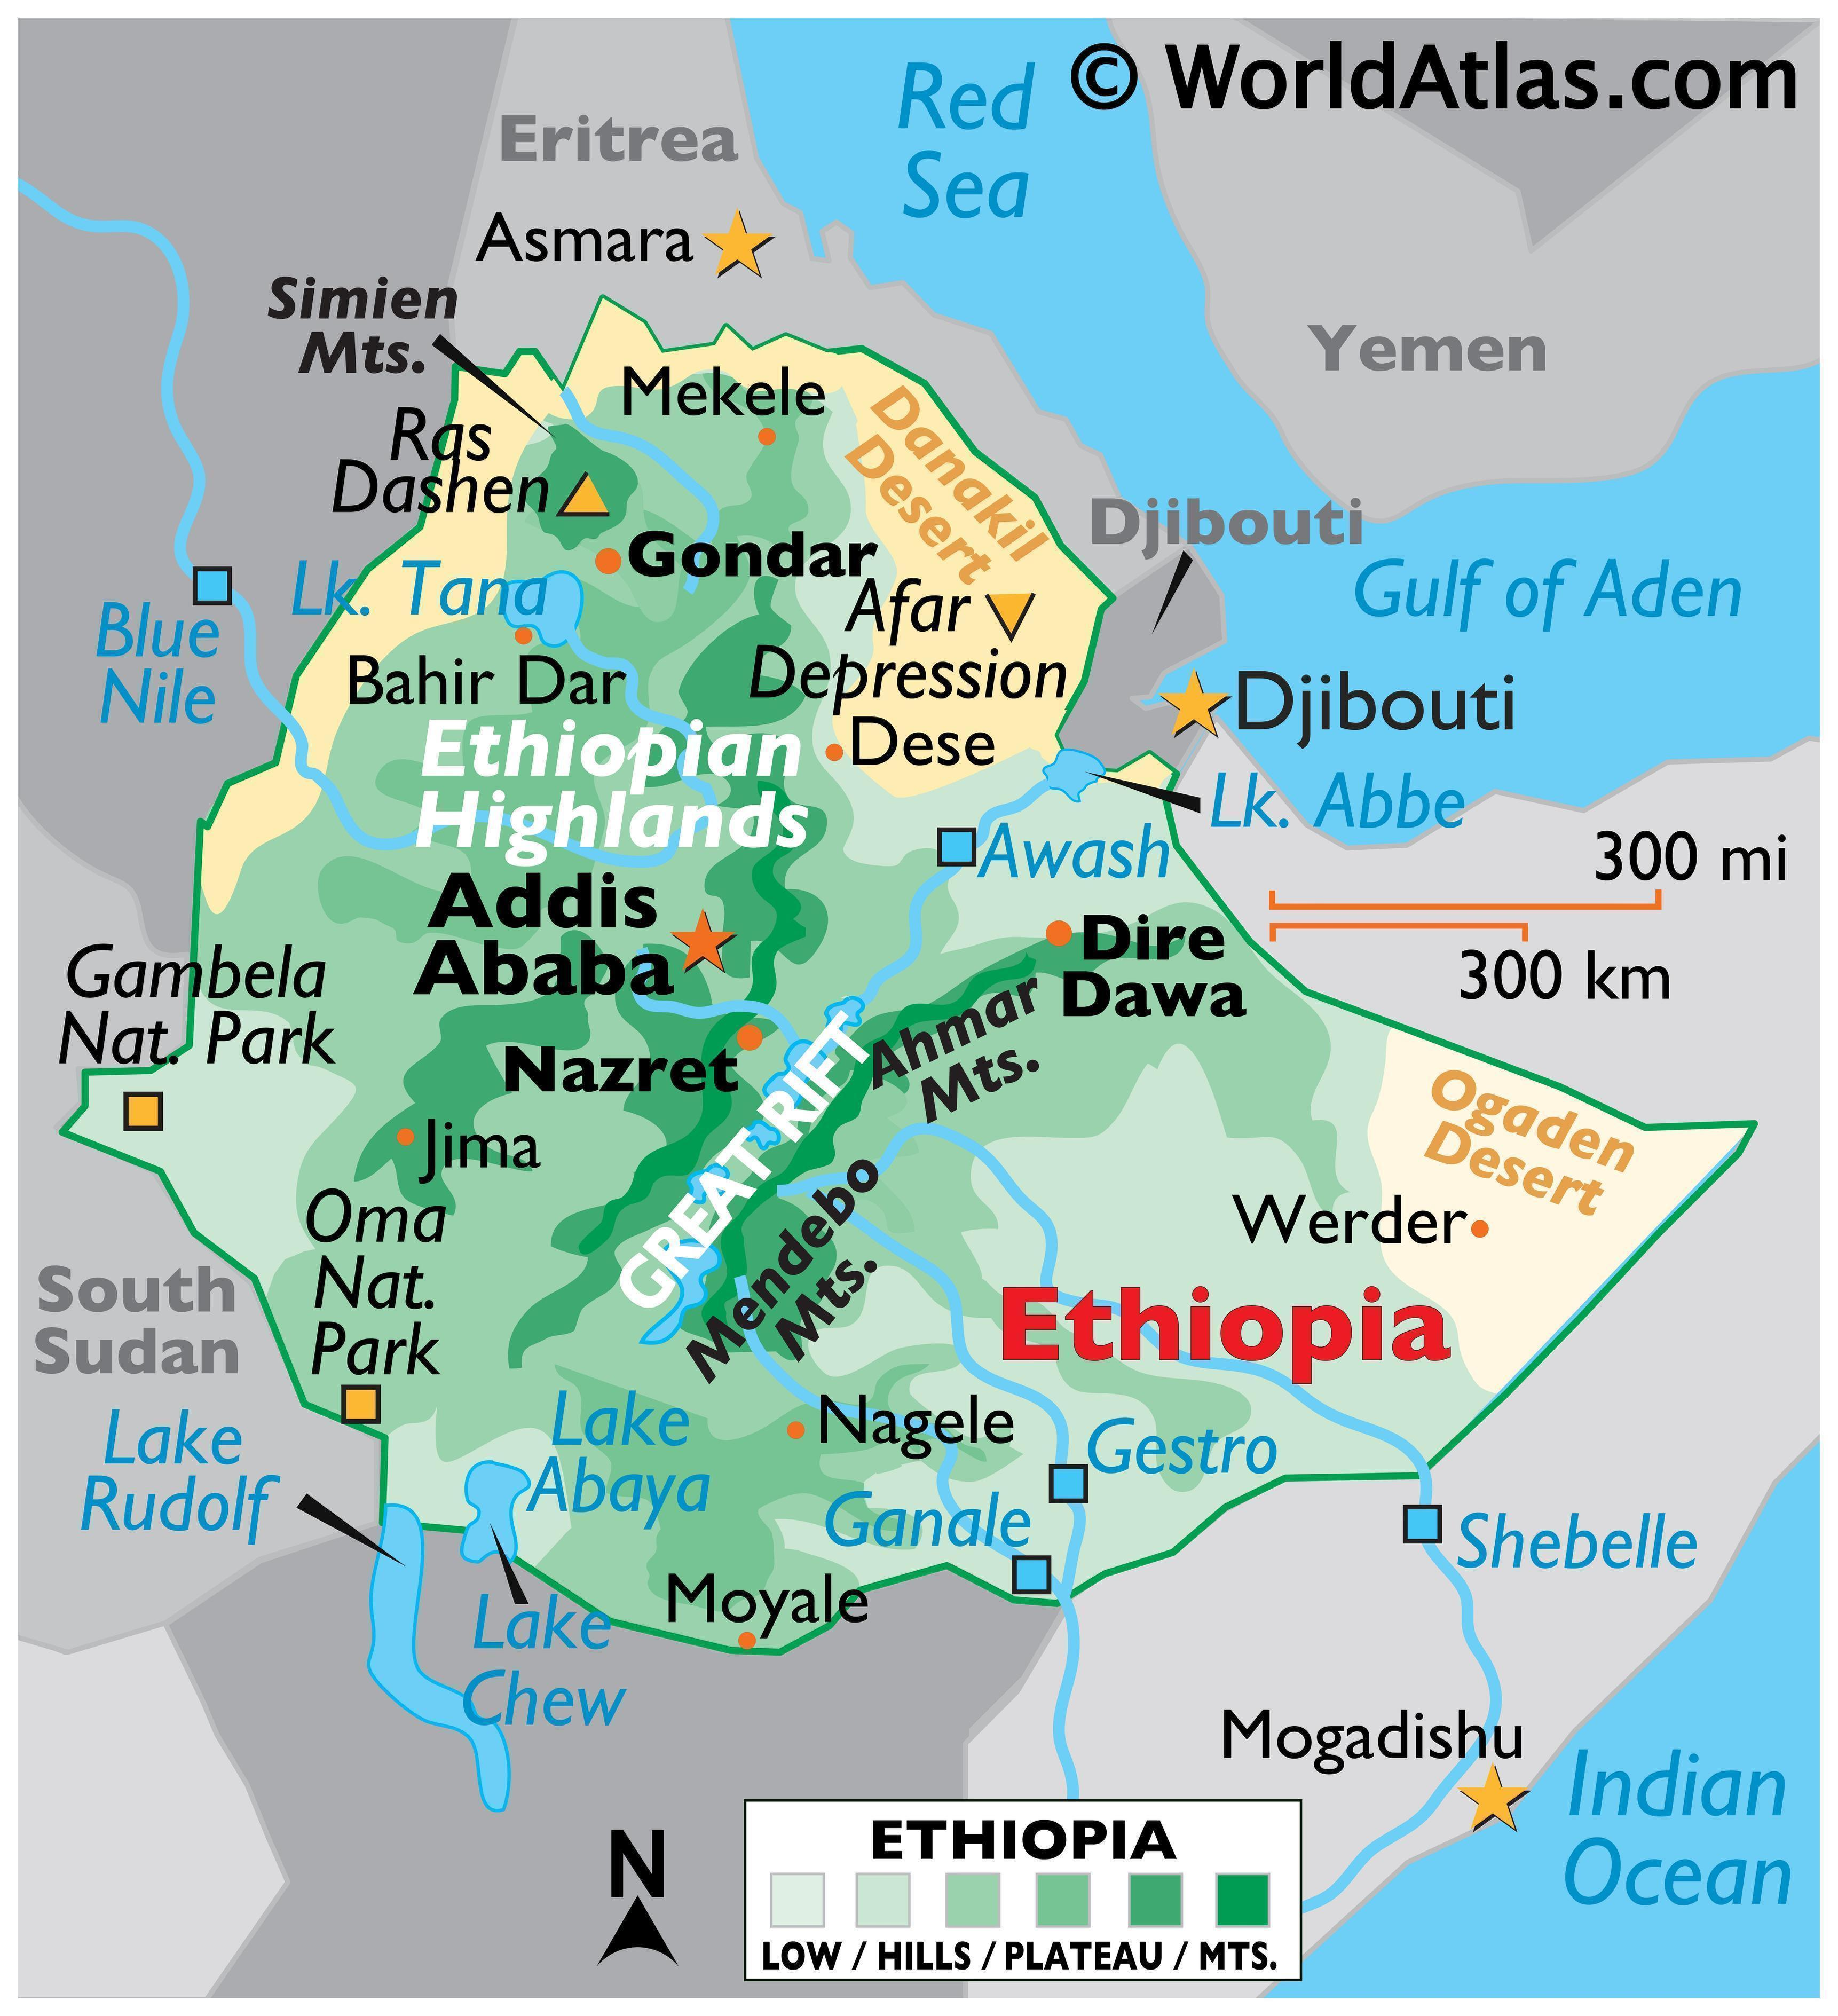 Physical Map of Ethiopia with state boundaries, relief, extreme points, major lakes and rivers, and important cities.